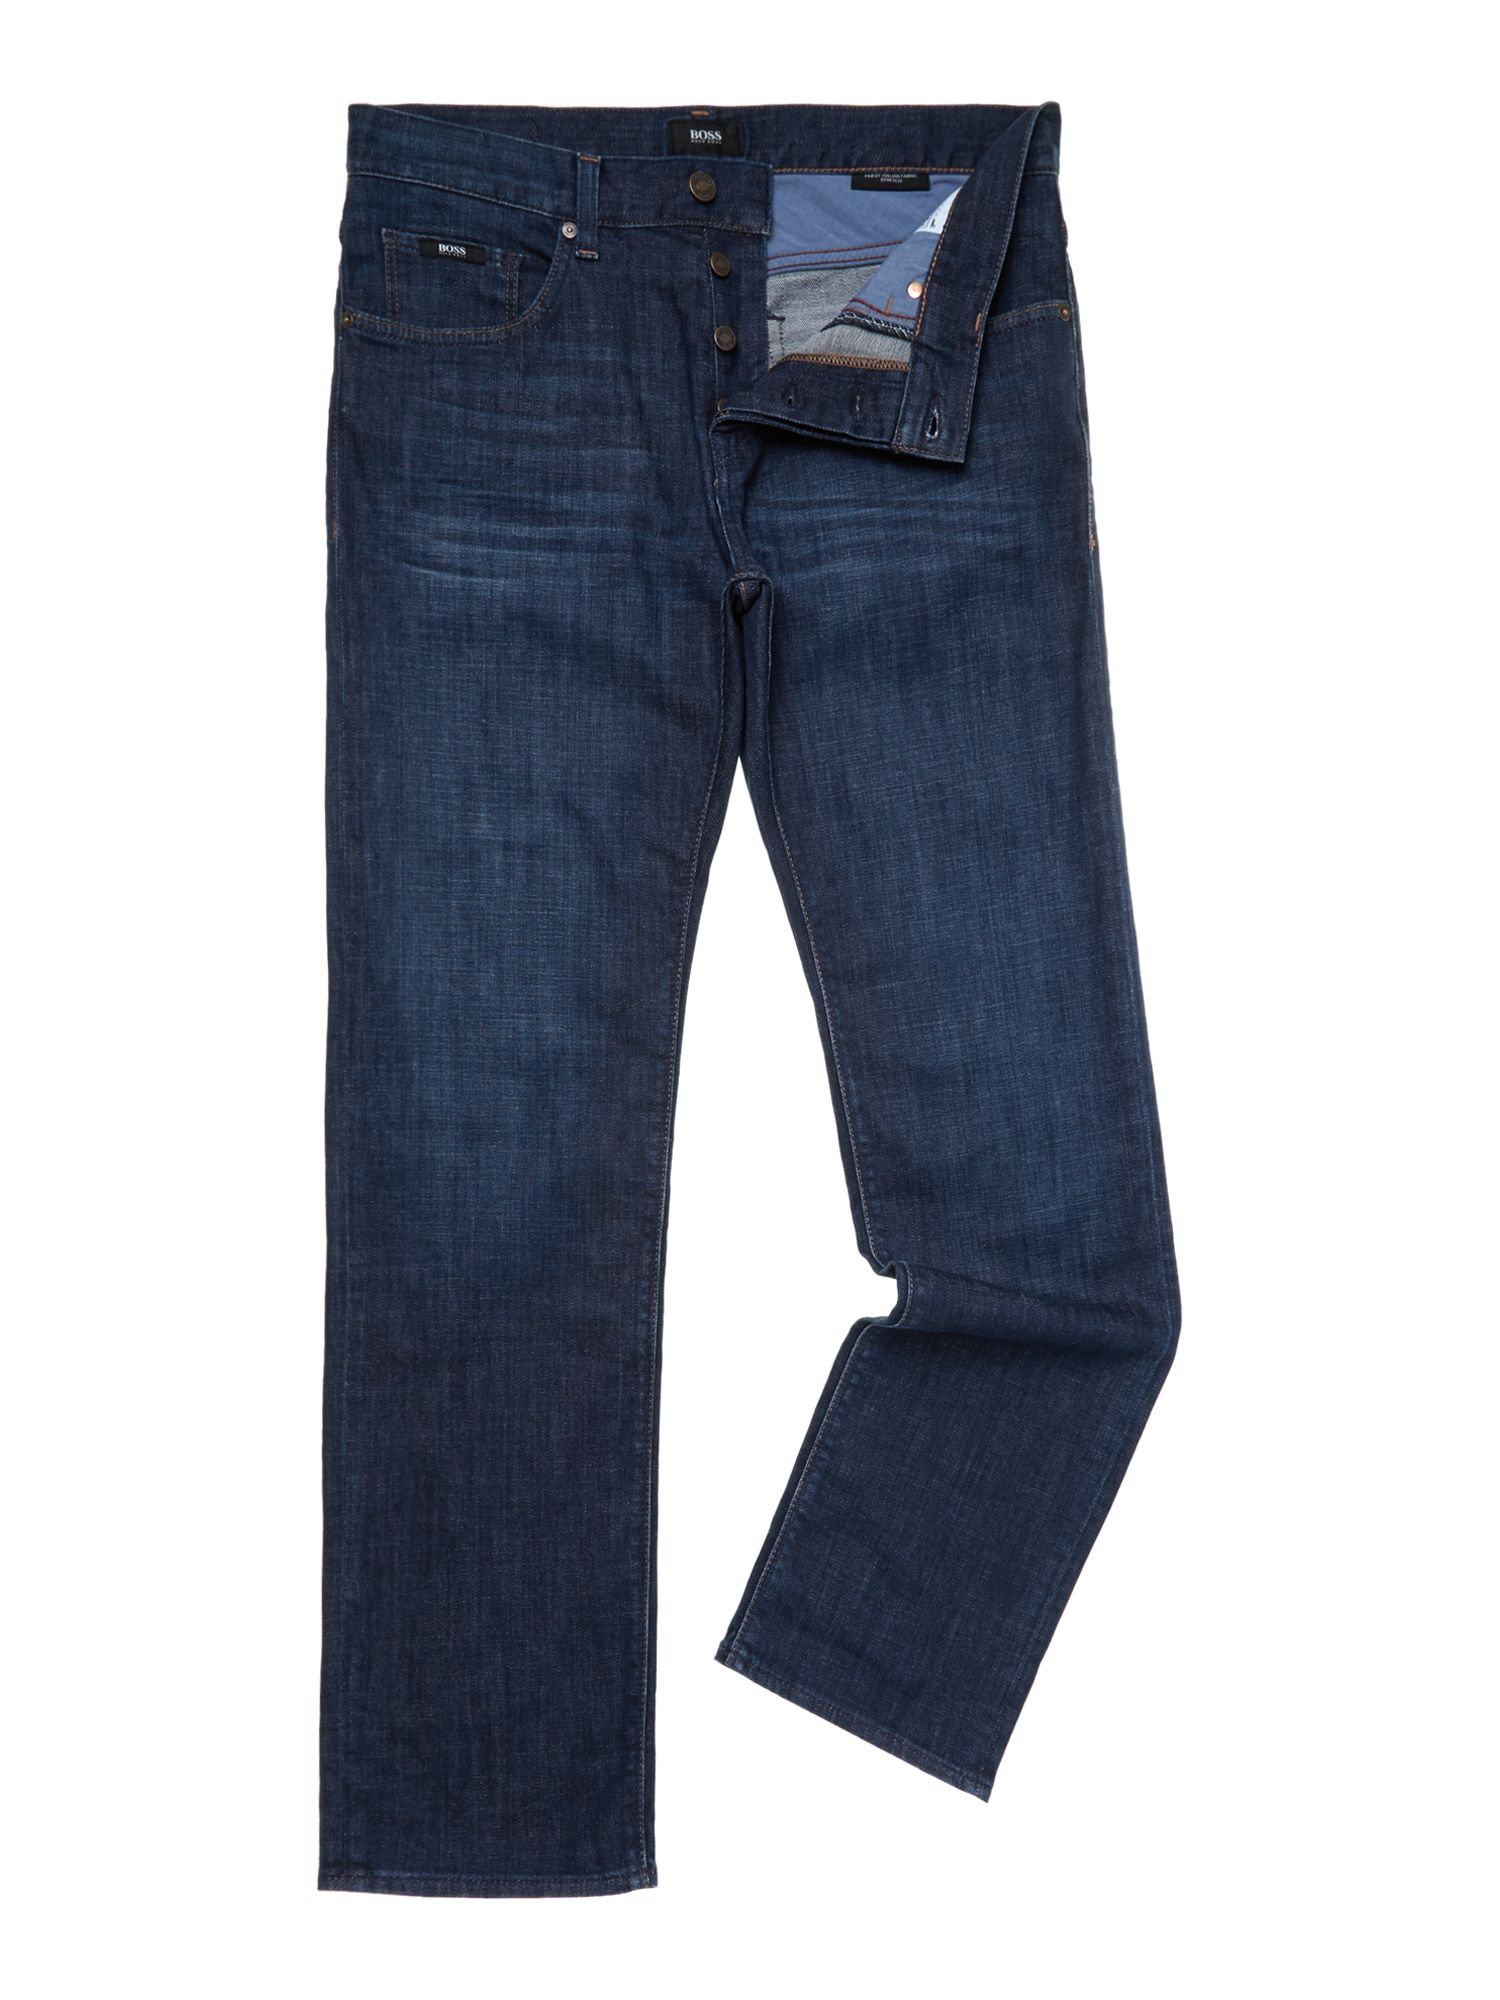 Maine mid blue wash regular straight leg jean